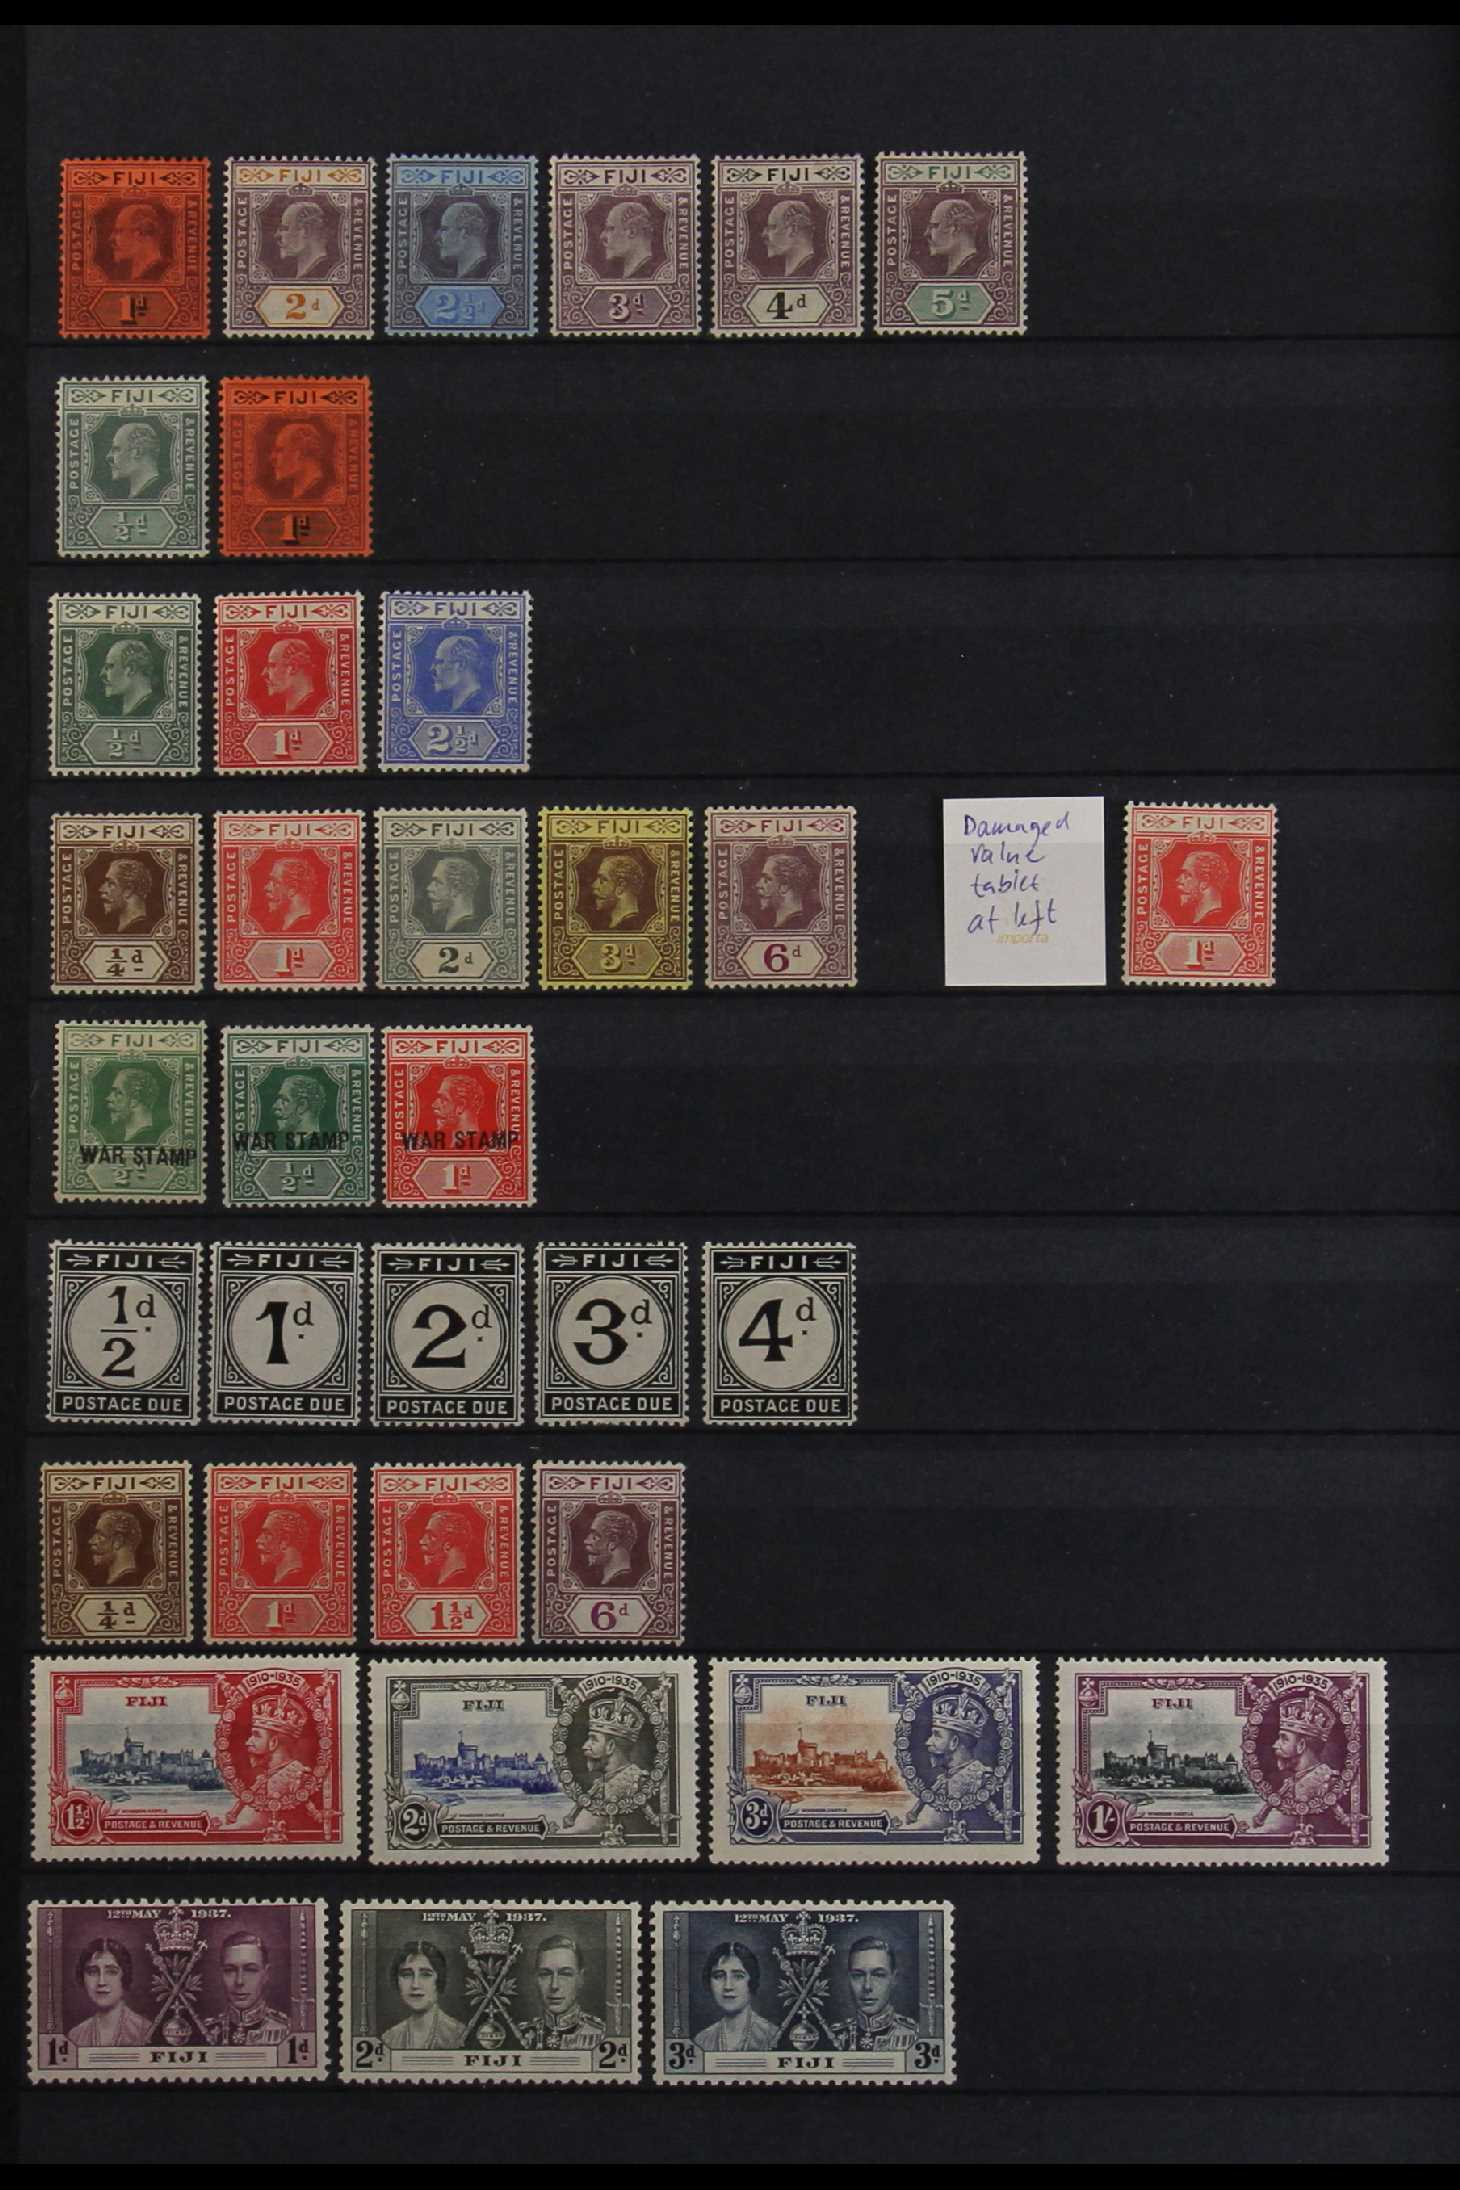 FIJI 1903-70 FINE MINT COLLECTION incl. 1903 set to 5d (excl. ½d), 1904-09 ½d & 1d, 1906-12 to 2½